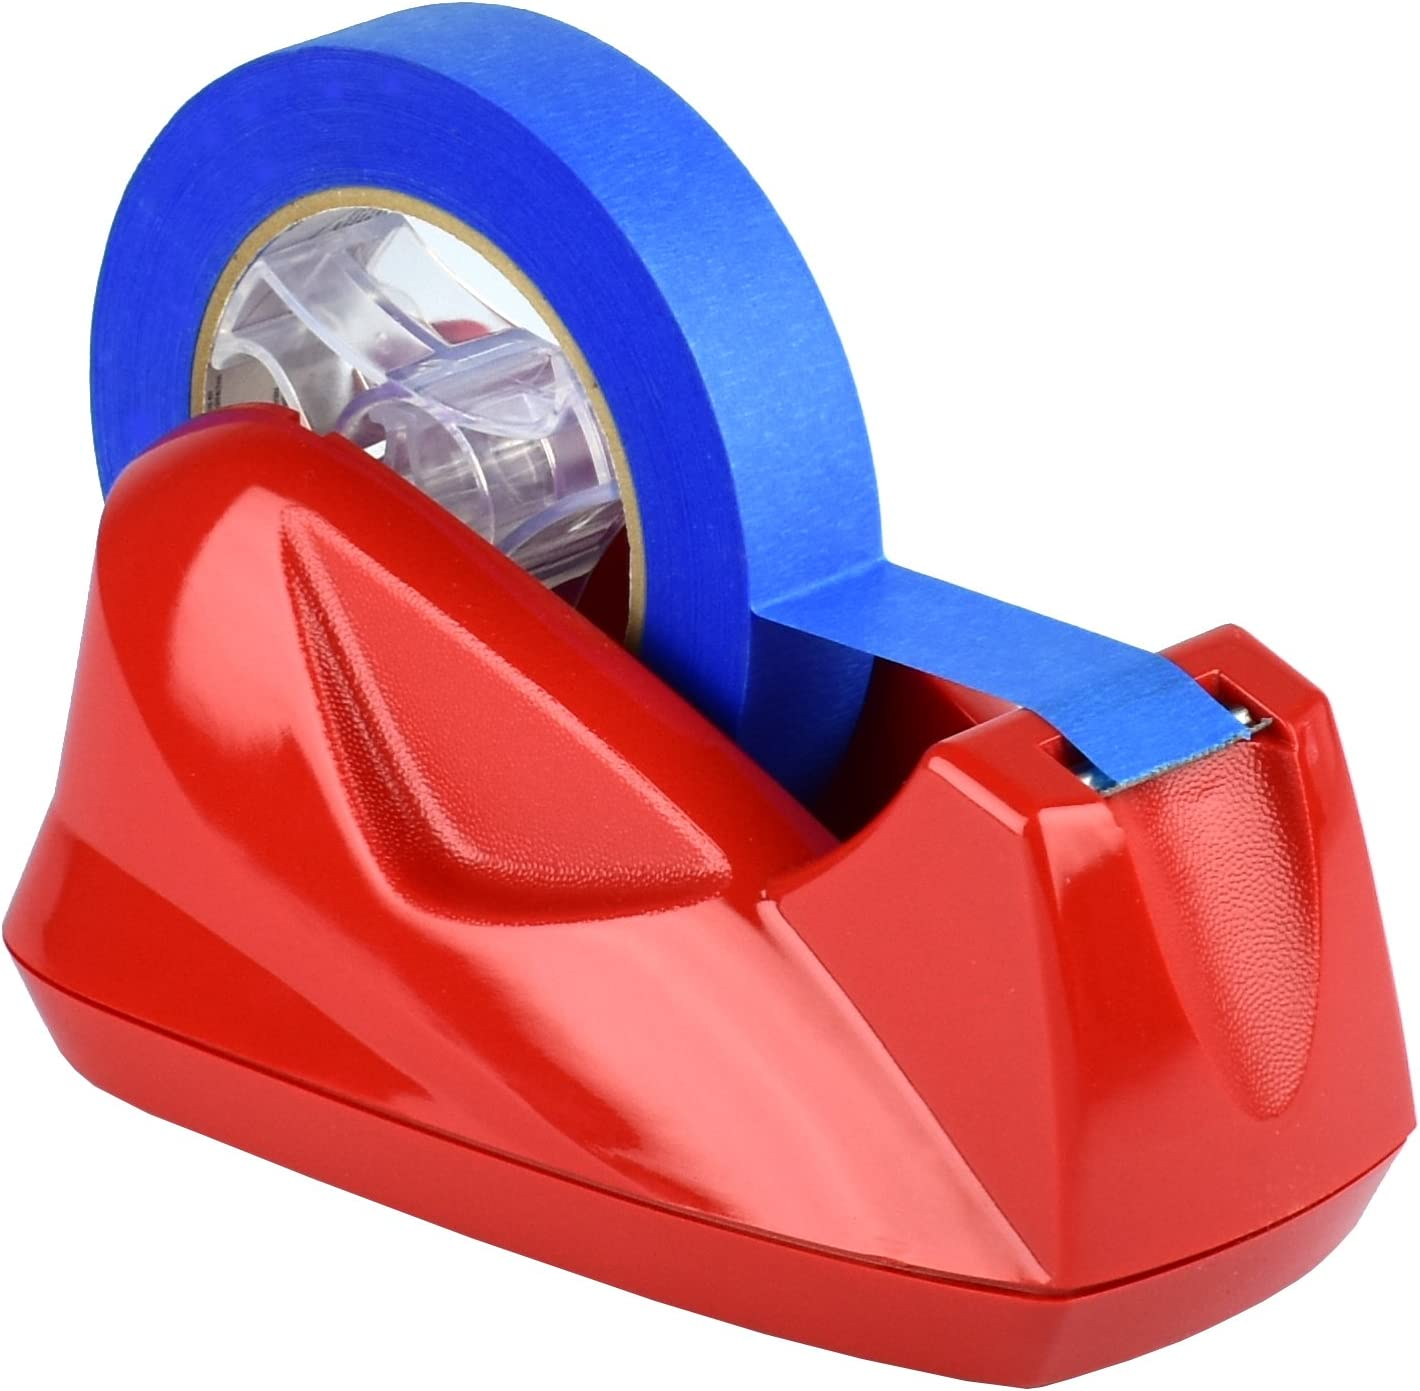 Acrimet Premium Desktop Tape Dispenser Jumbo Non-Skid Base (Heavy Duty) (Red Color)